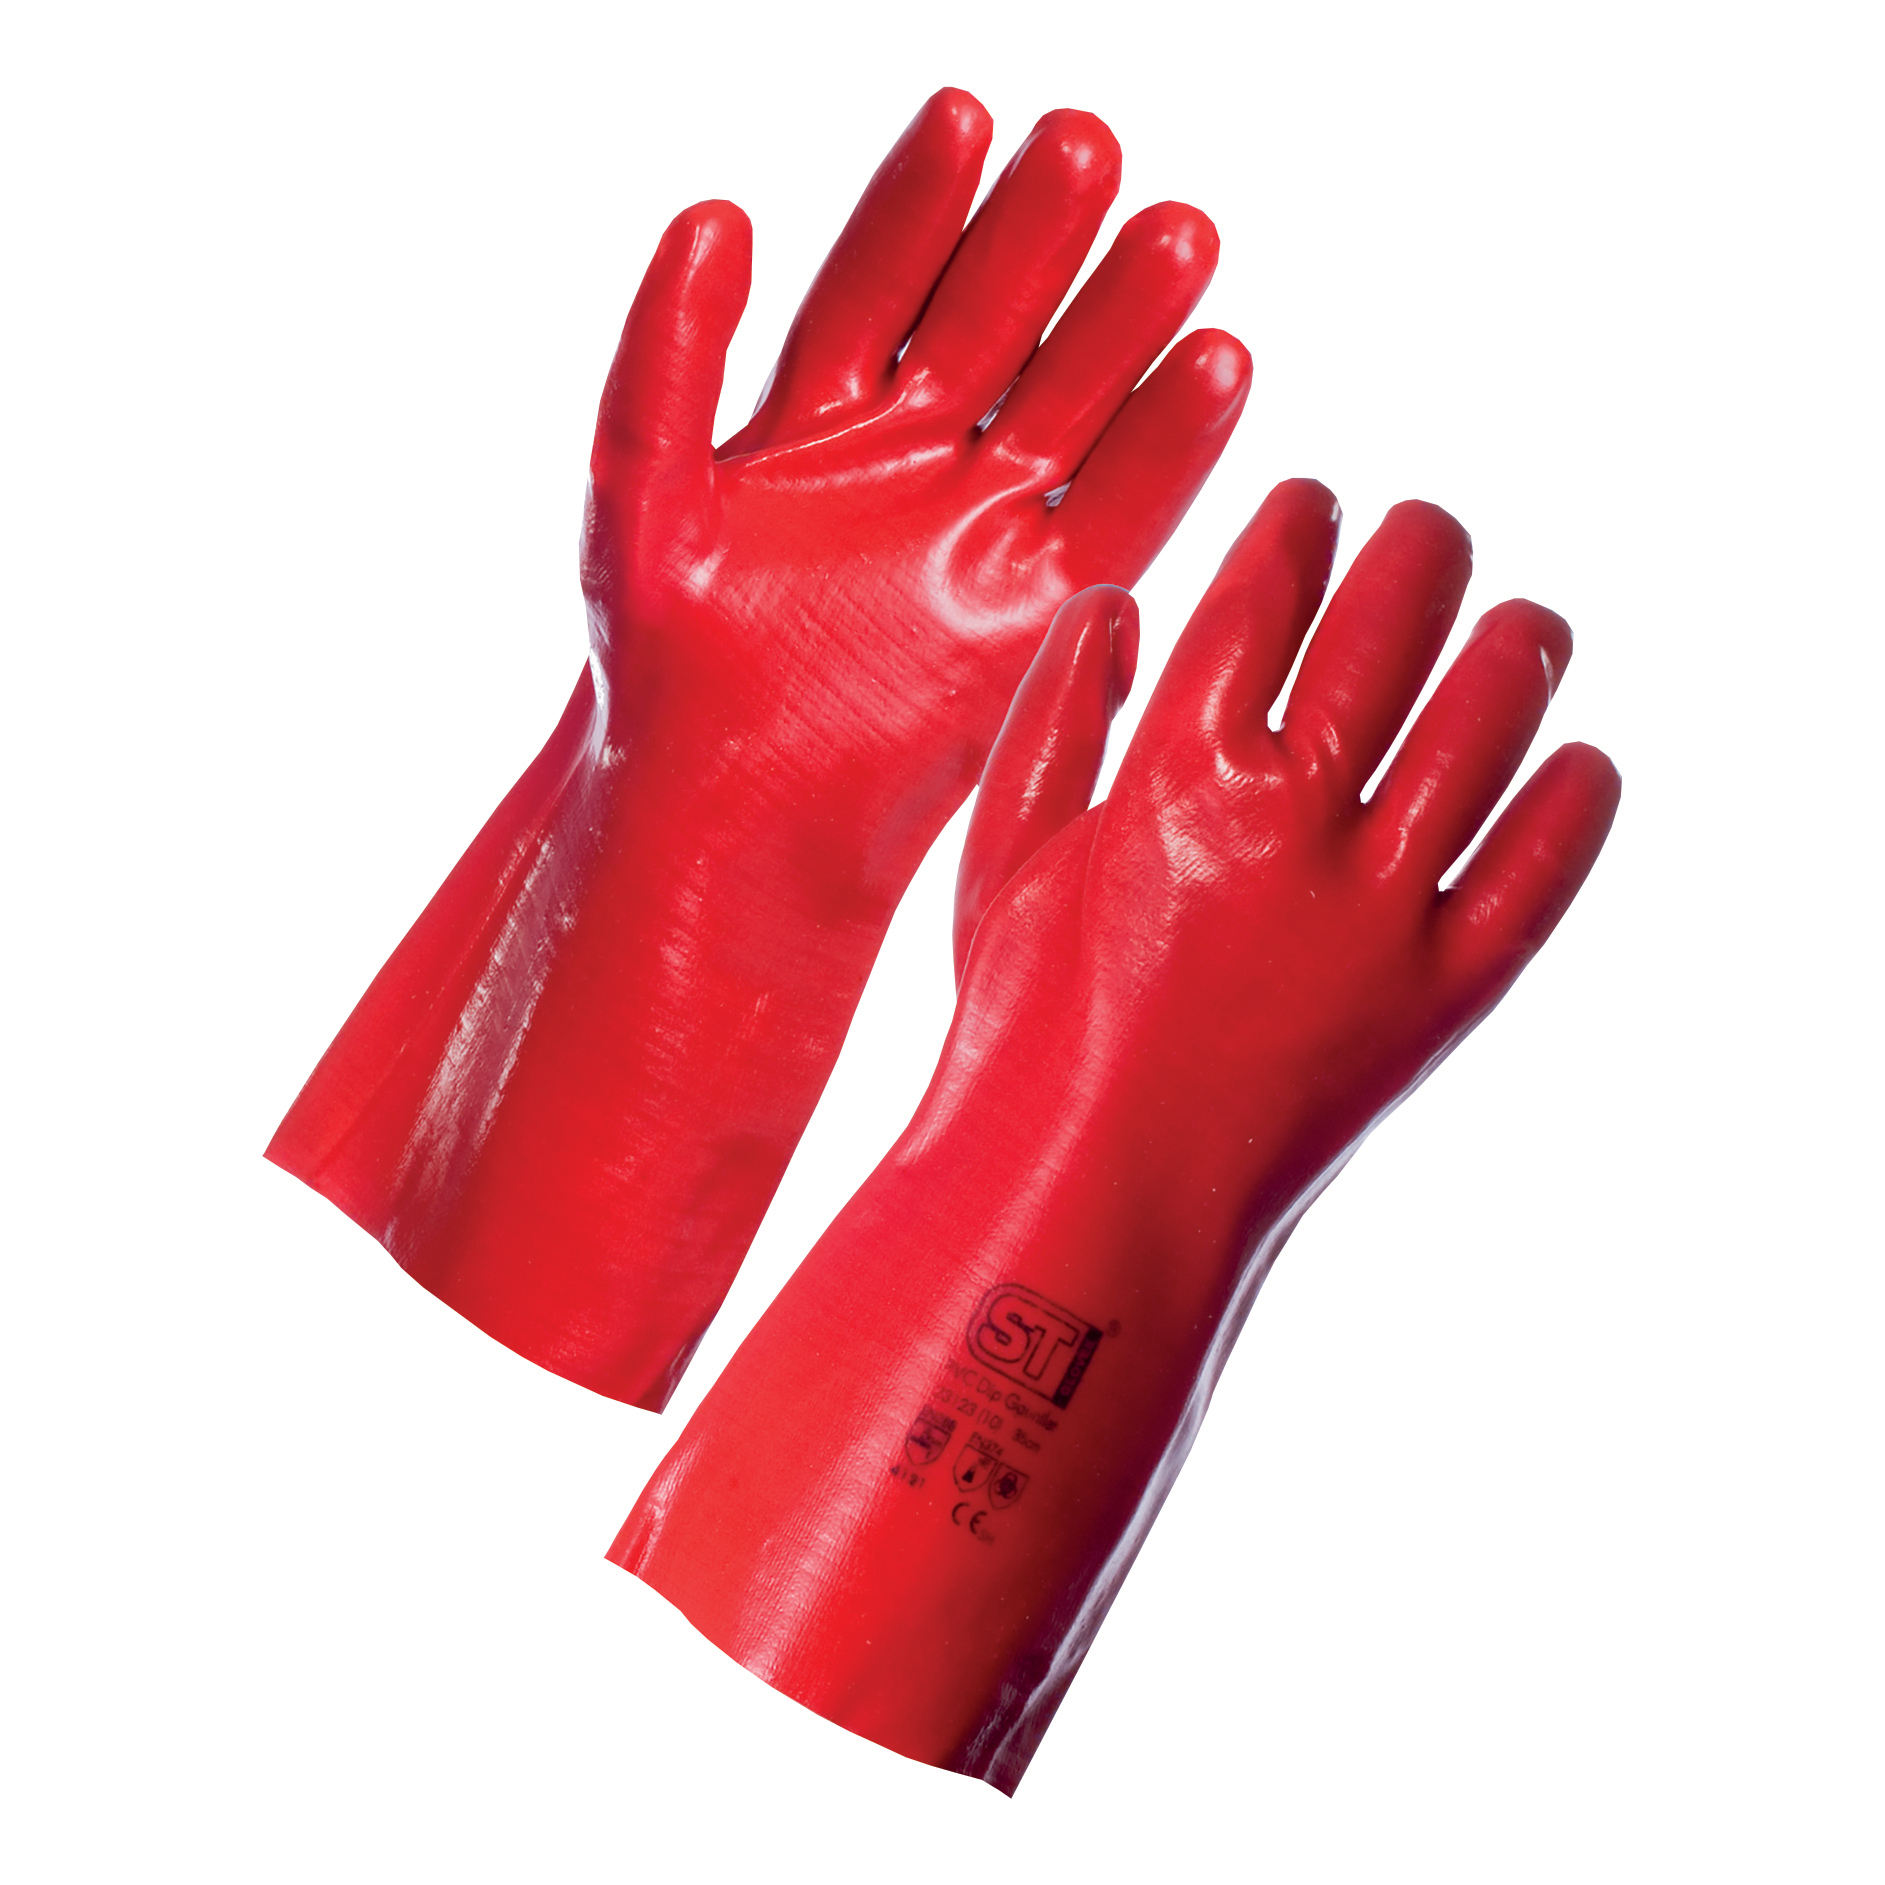 Knitted Wrist Gloves Cotton & PVC Large Red 12 Pairs